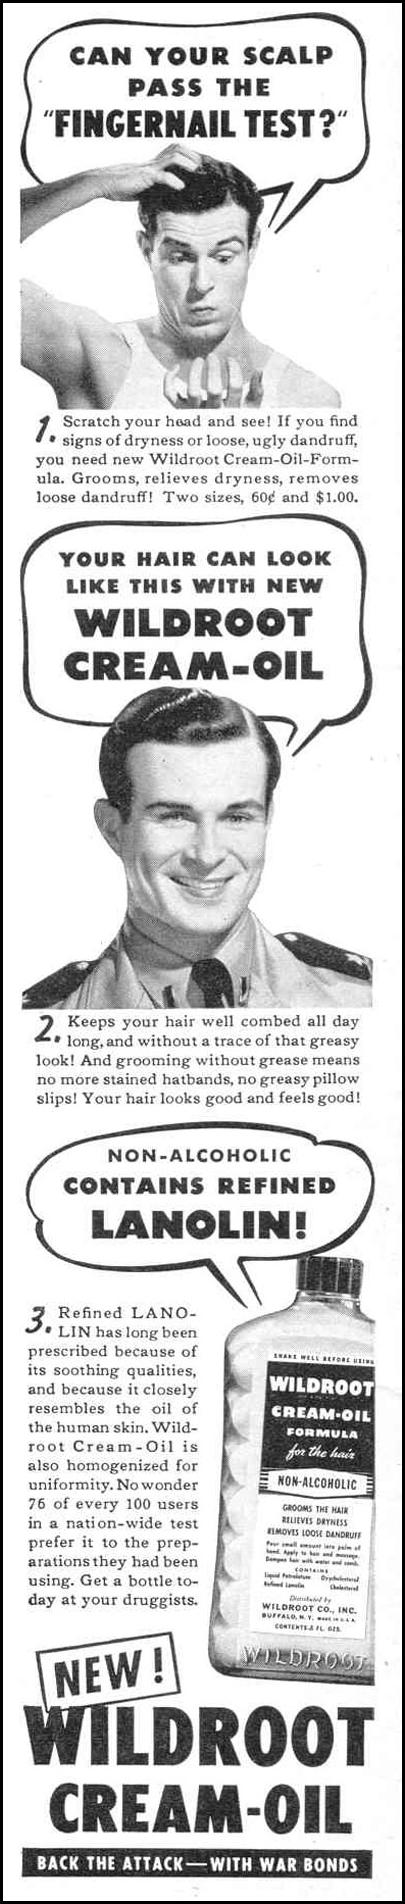 WILDROOT CREAM-OIL LIFE 11/01/1943 p. 2